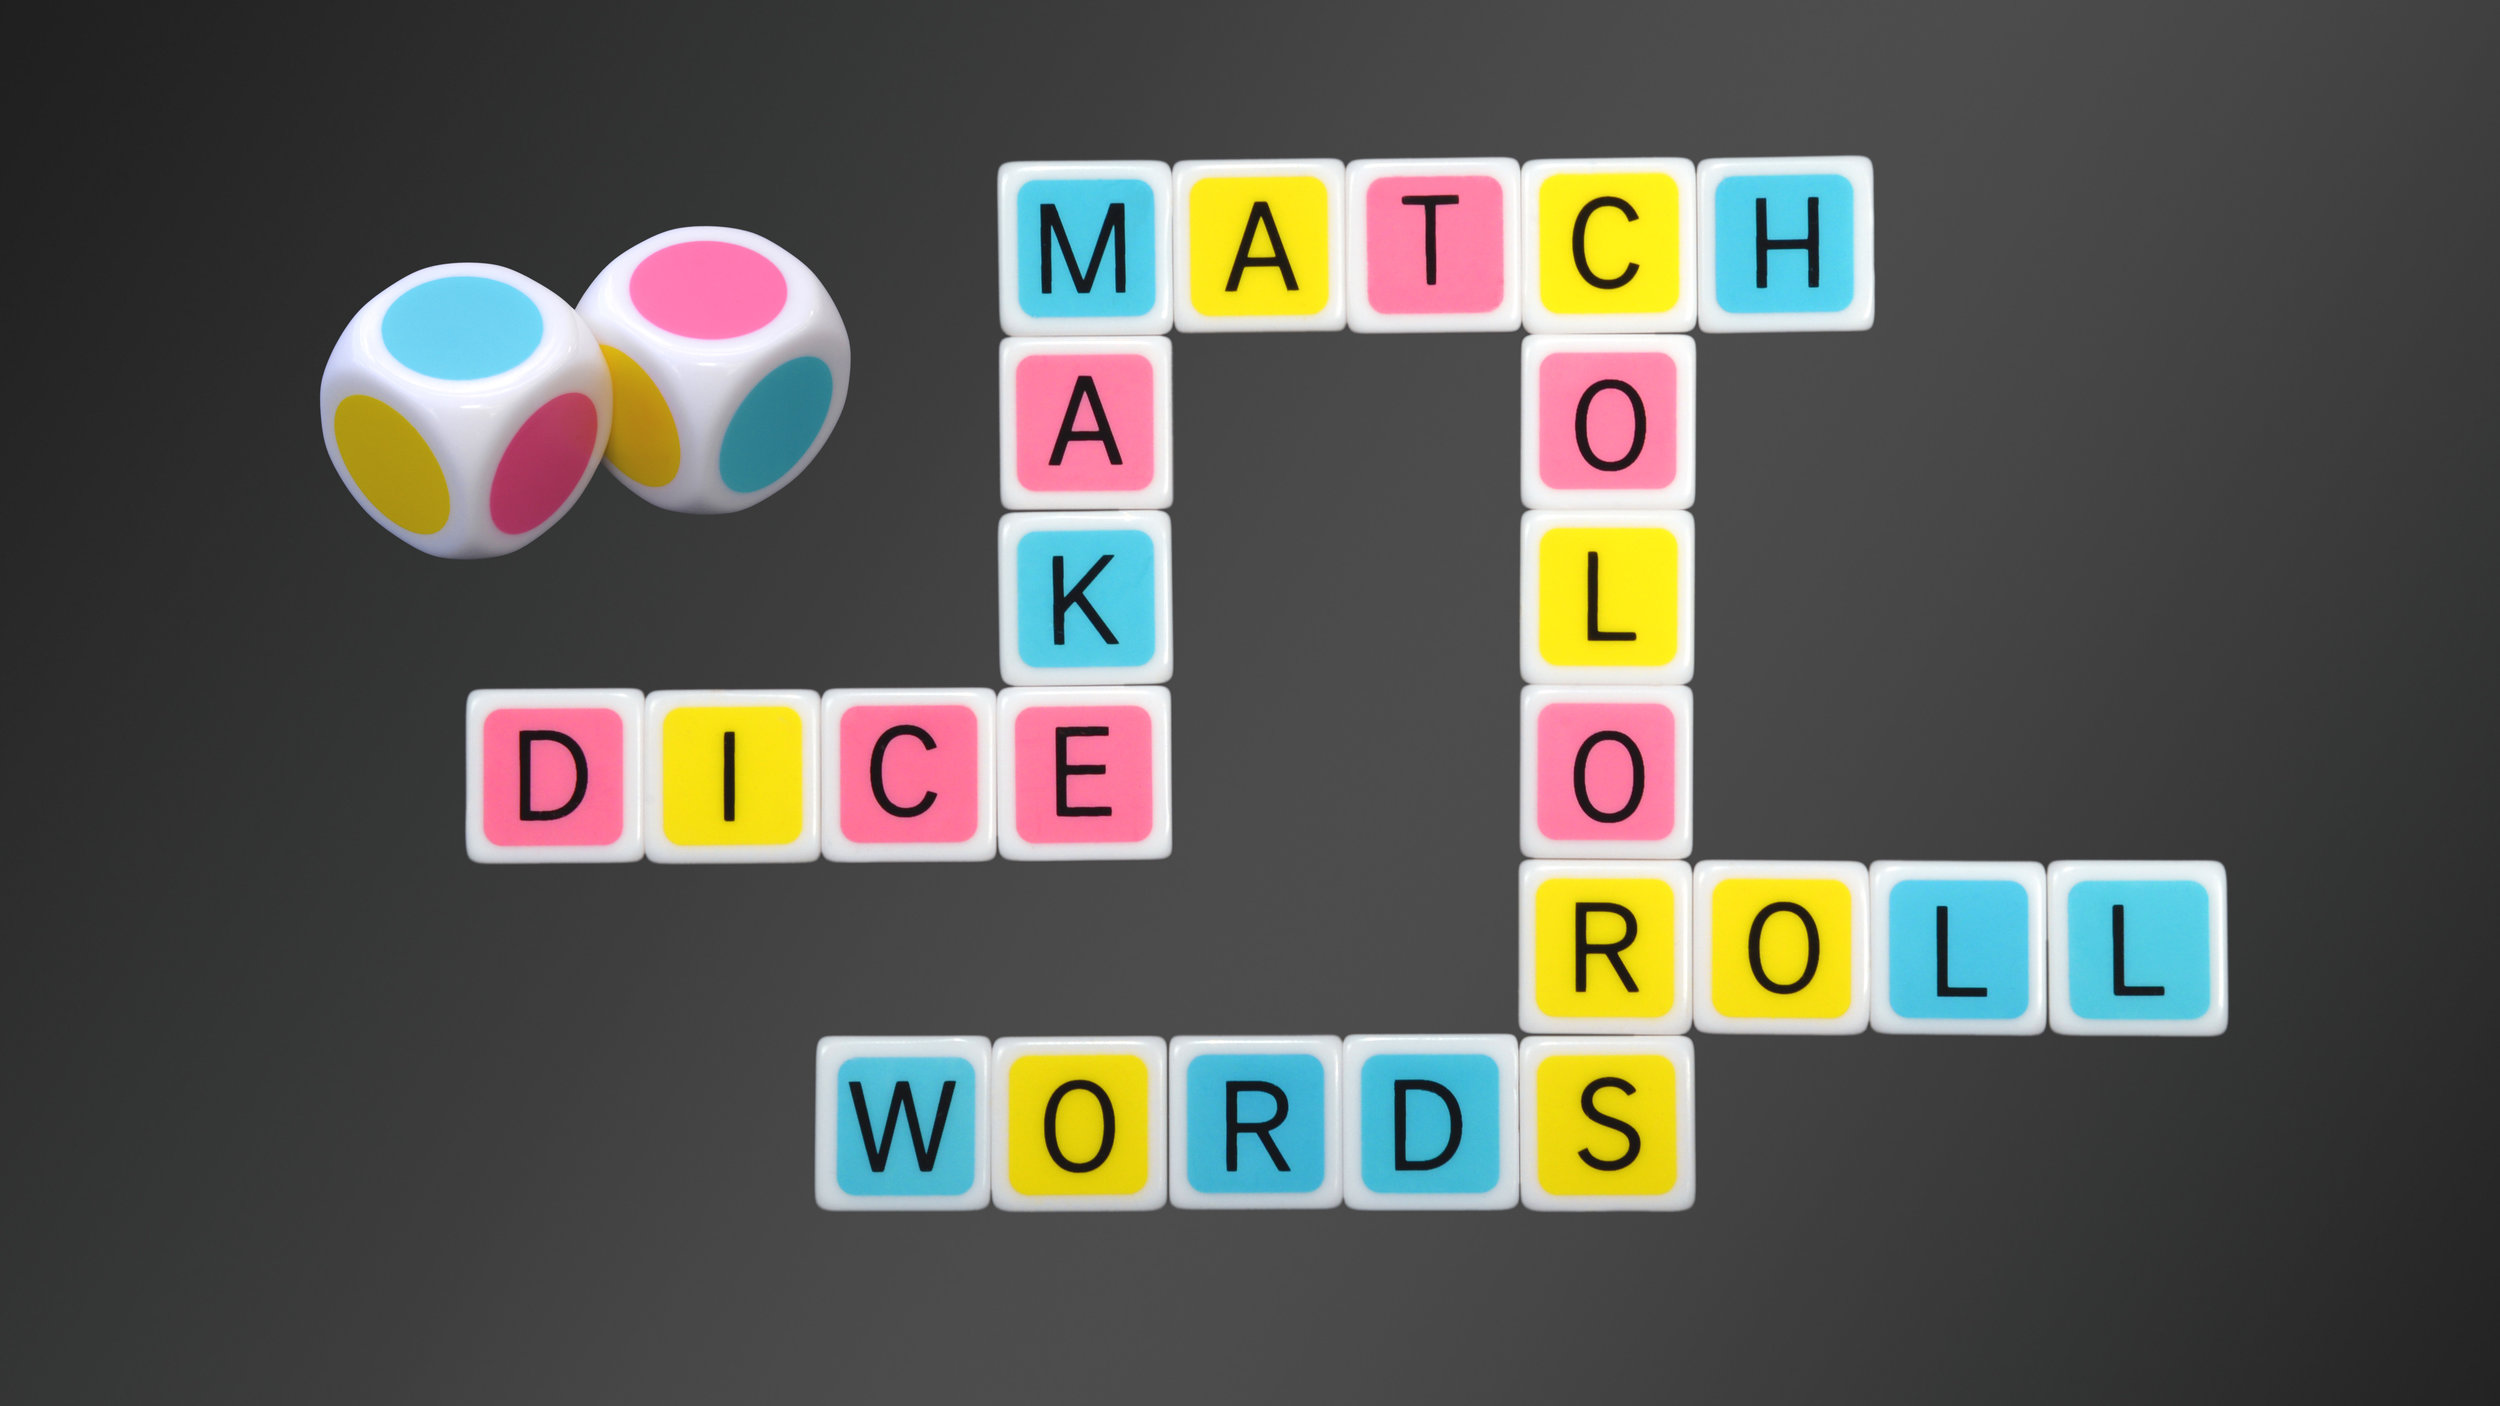 ROLL DICE, MATCH COLORS, MAKE WORDS